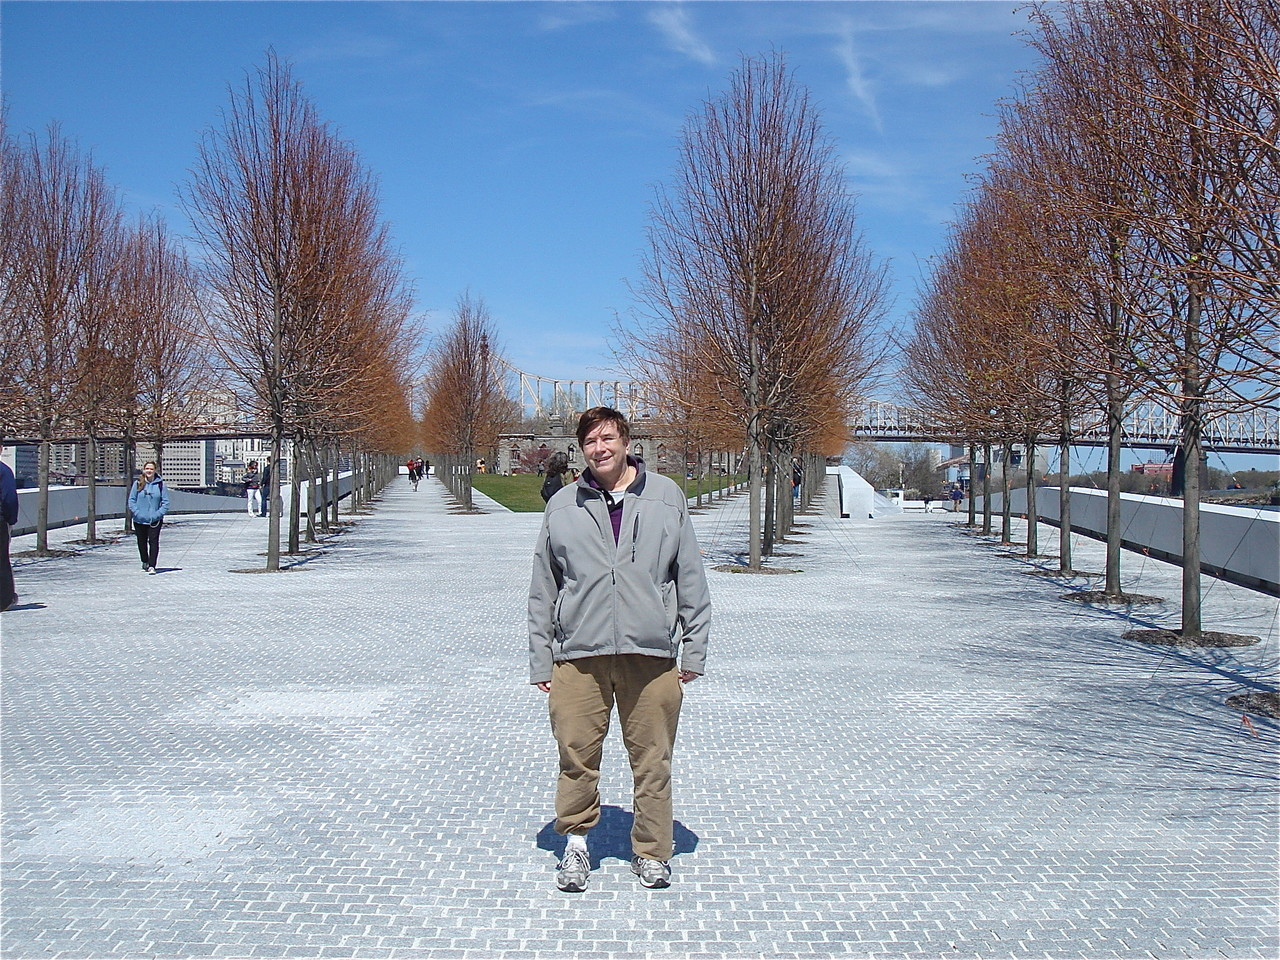 April 21, 2013  John at the FDR Memorial on Roosevelt Is.  with the linden trees!